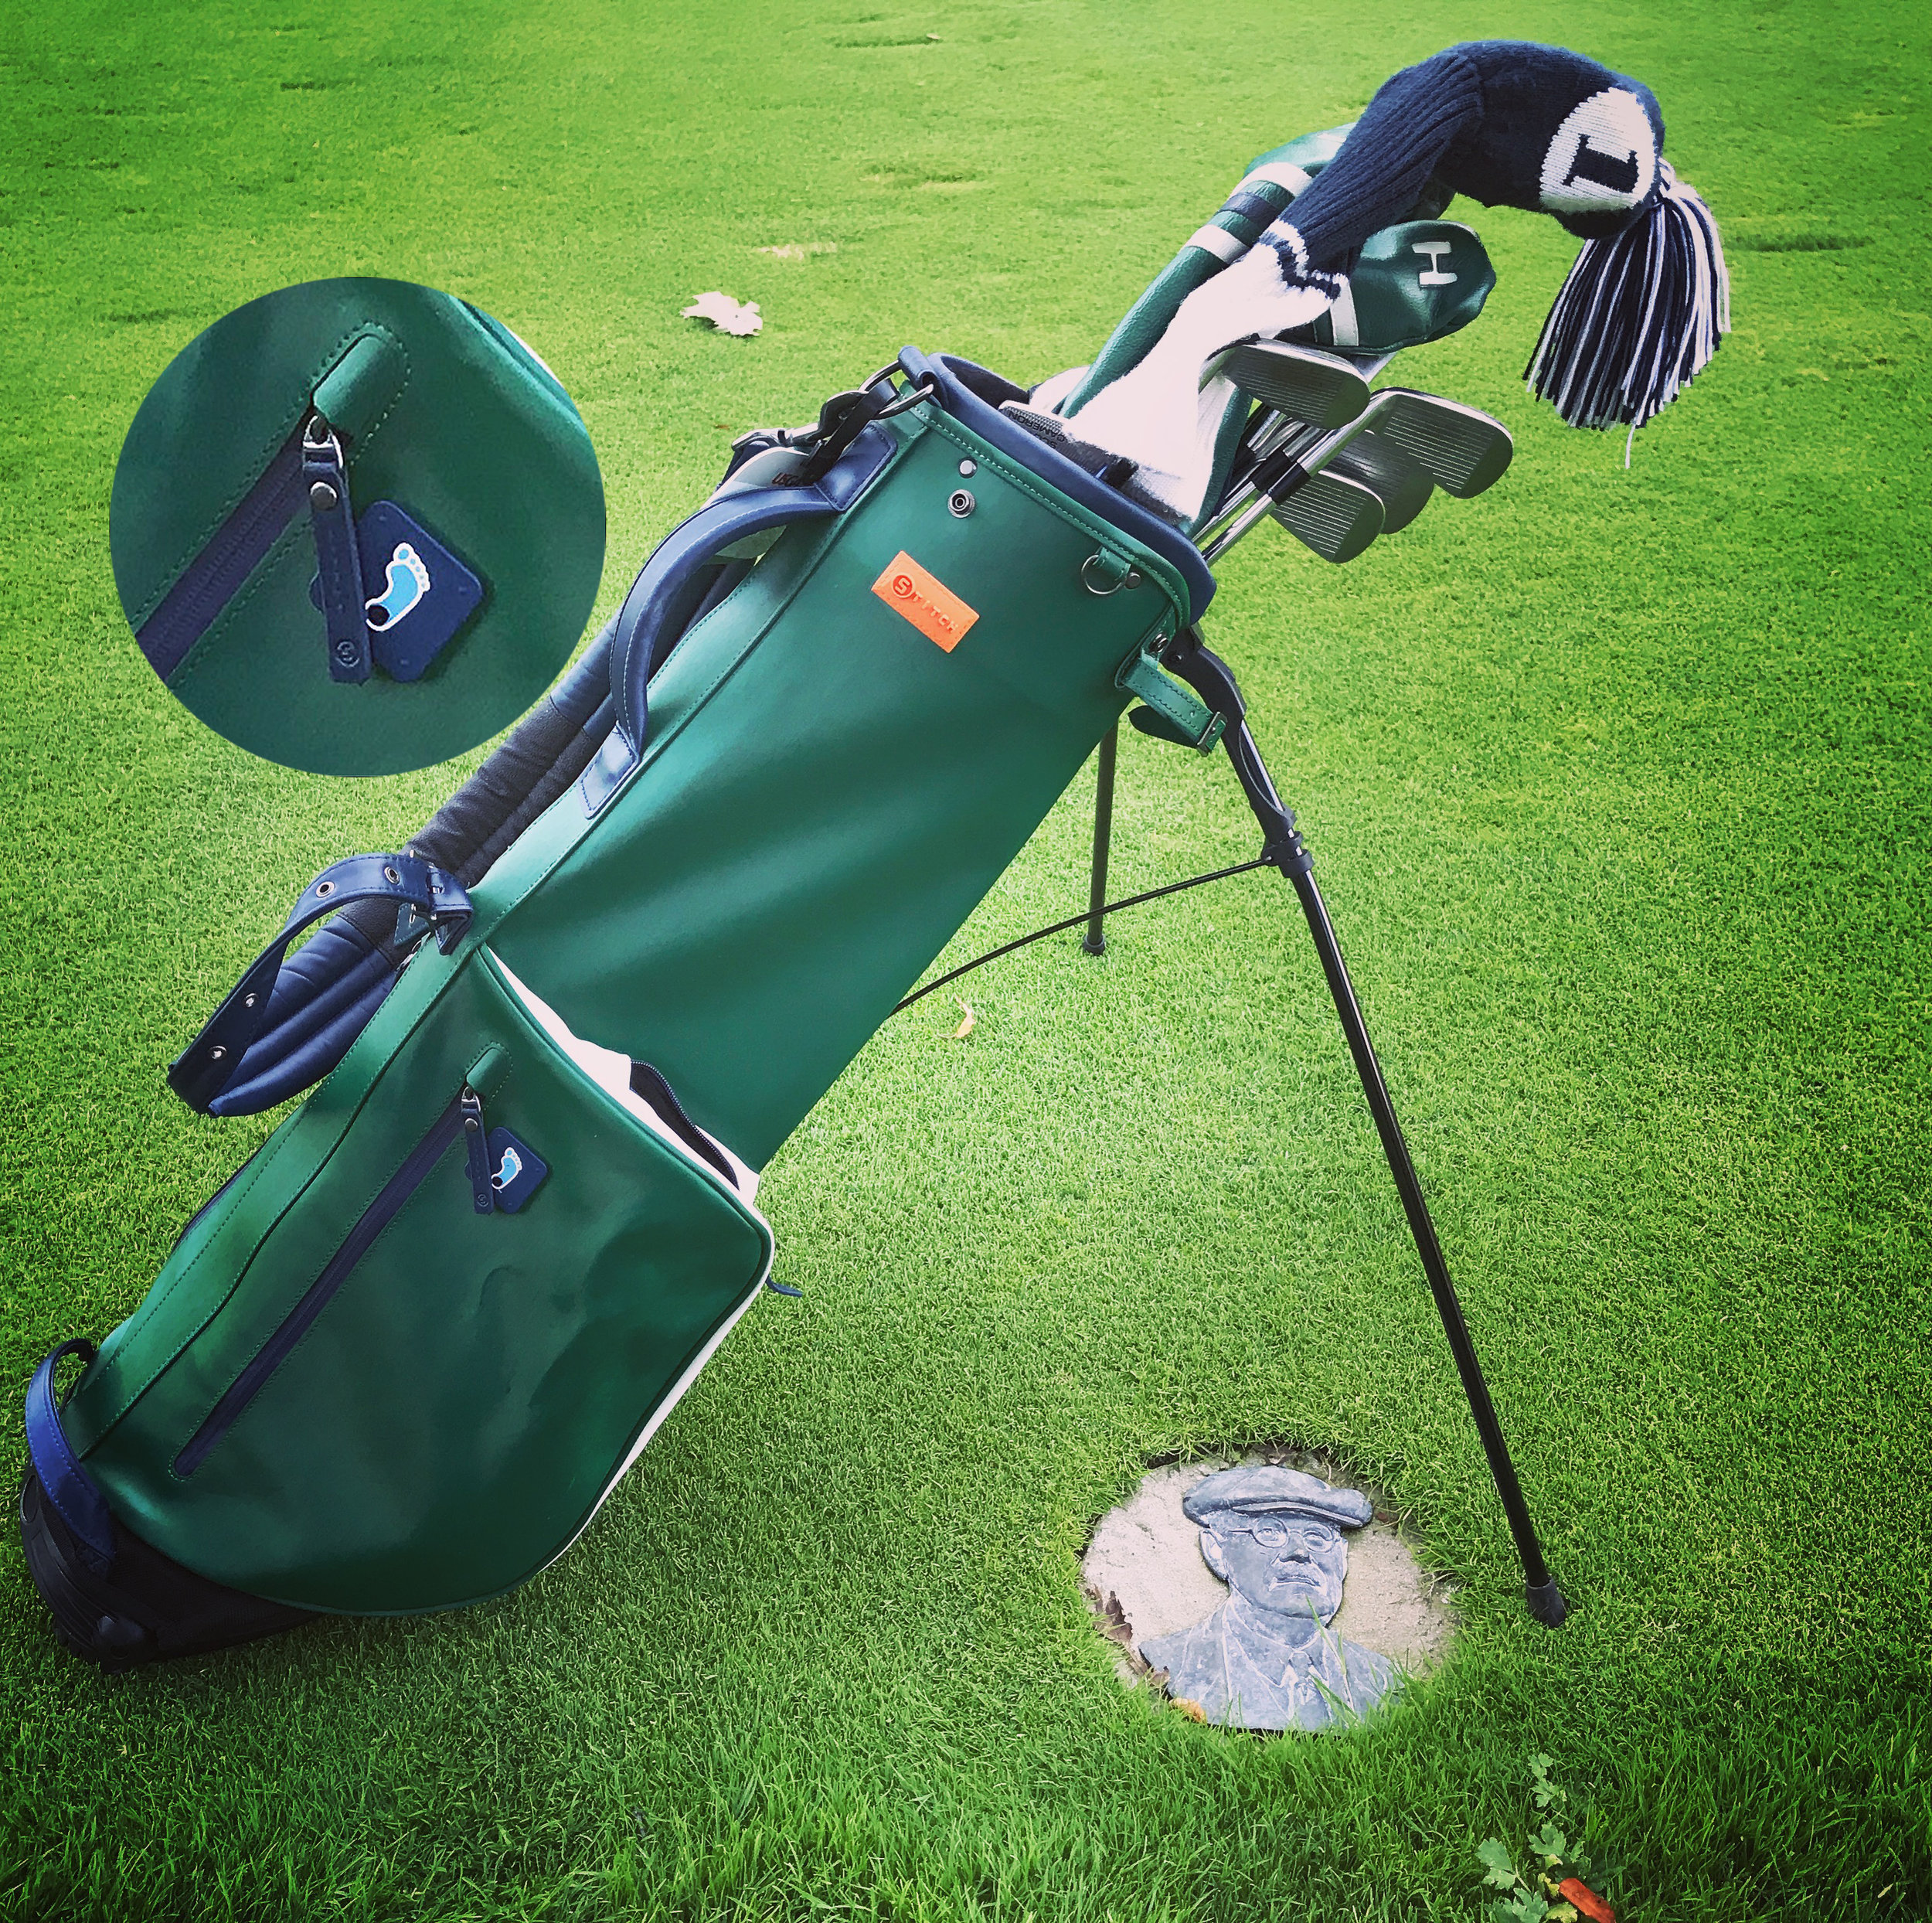 The bag's design has new-world features and an old-world simplicity, making it the ideal companion for a walk around a classic Donald Ross-designed course like the one at Linville Golf Club. Customization for school or club affiliations is a Stitch specialty.